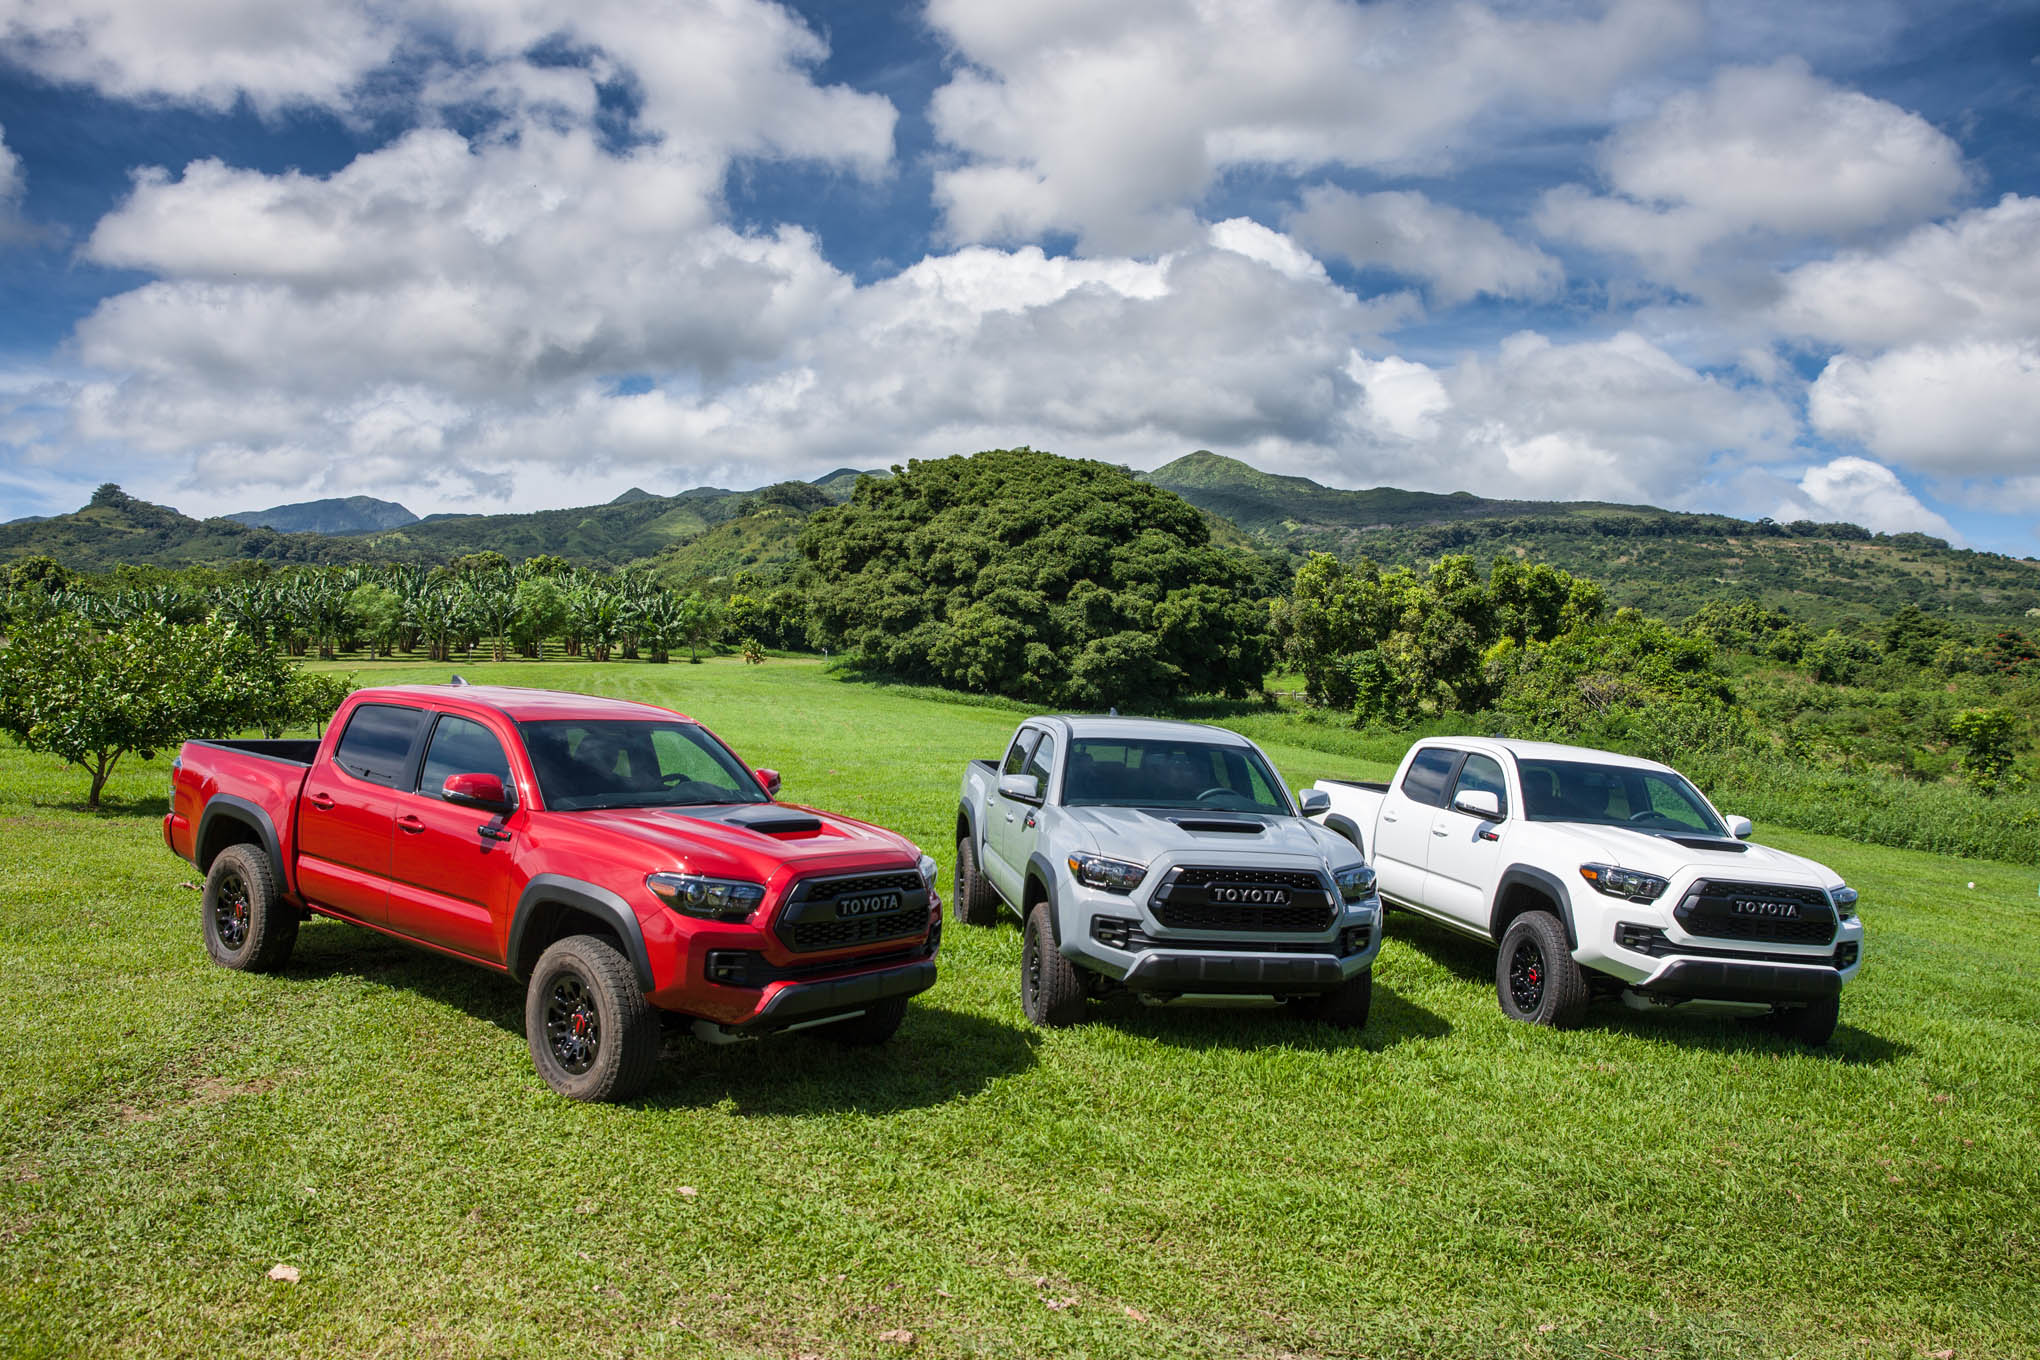 The Tacoma TRD Pro color palate is bold and simple, with three really cool choices to select from: Barcelona Red Metallic, Cement, and Super White. It's one way to really stand out apart from the crowd.